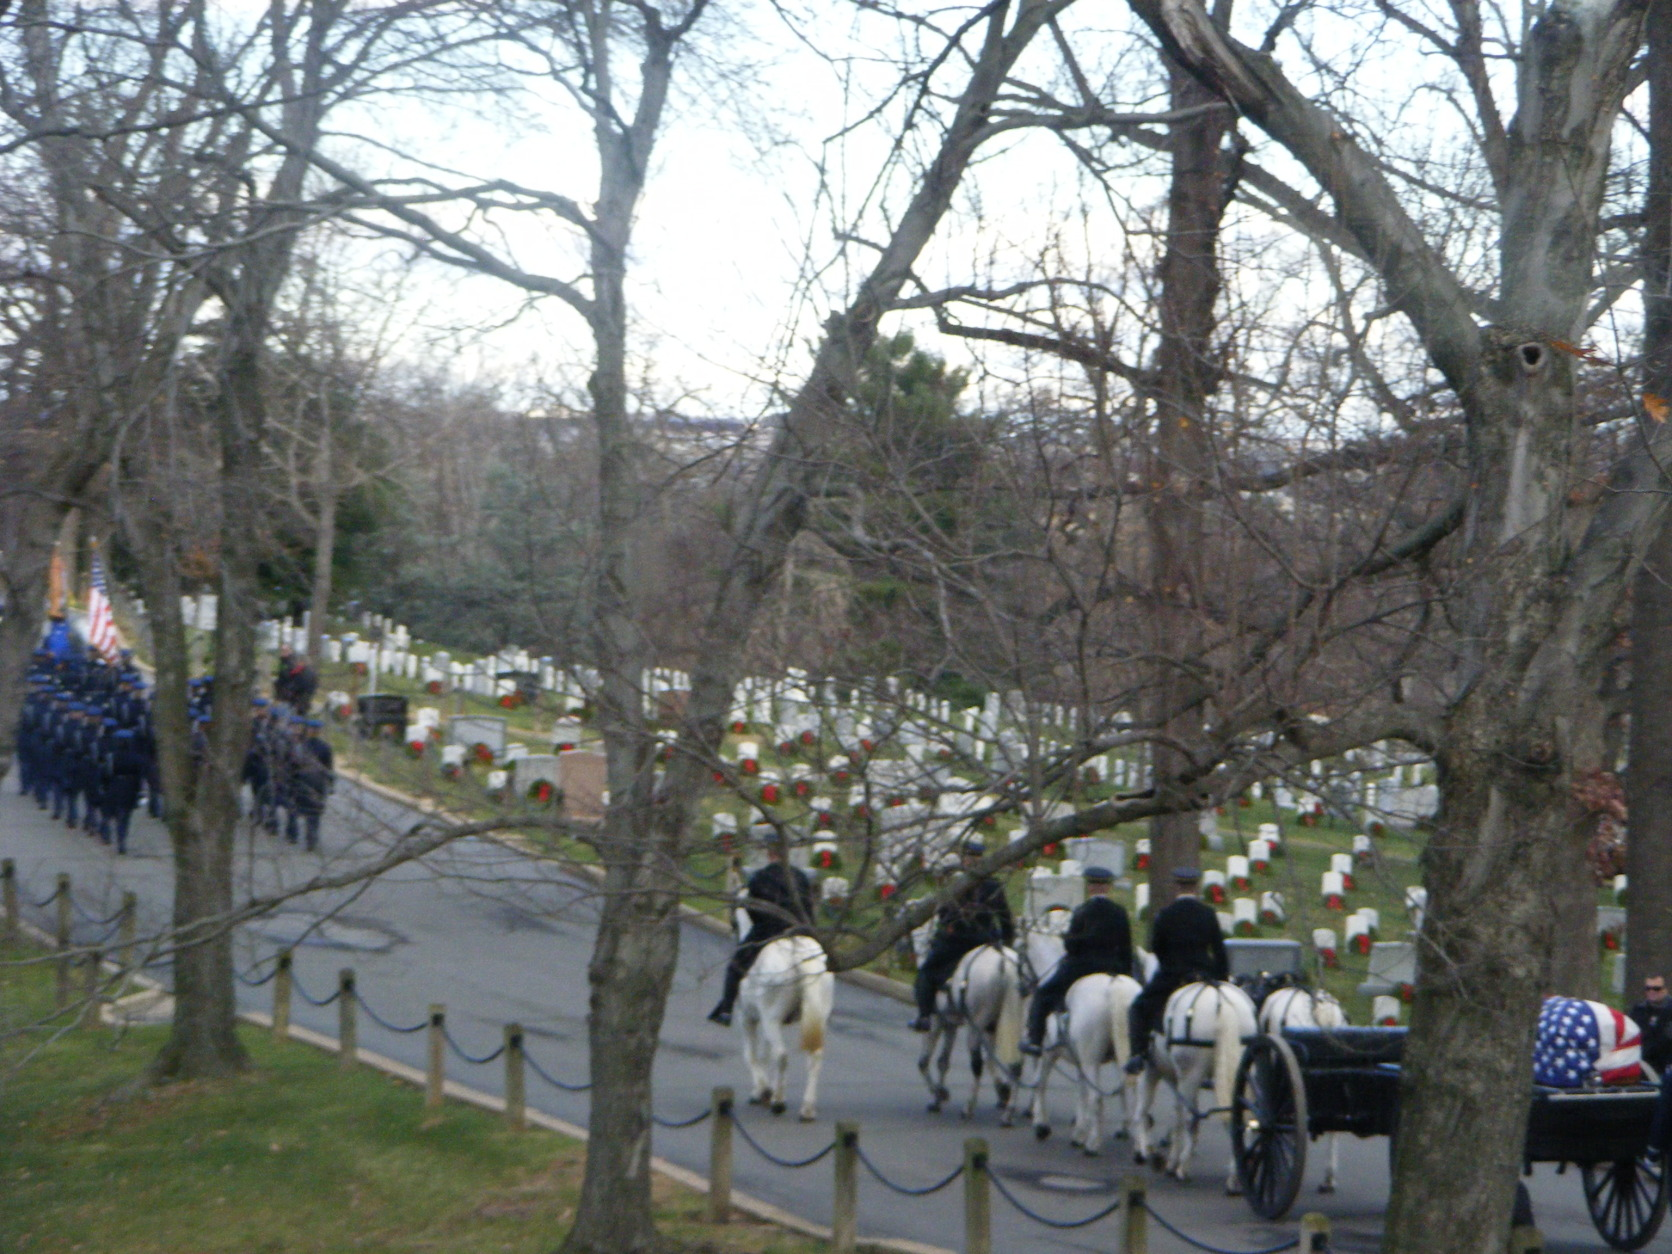 A horse-drawn carriage brings Don Sheda's casket to its final resting place.